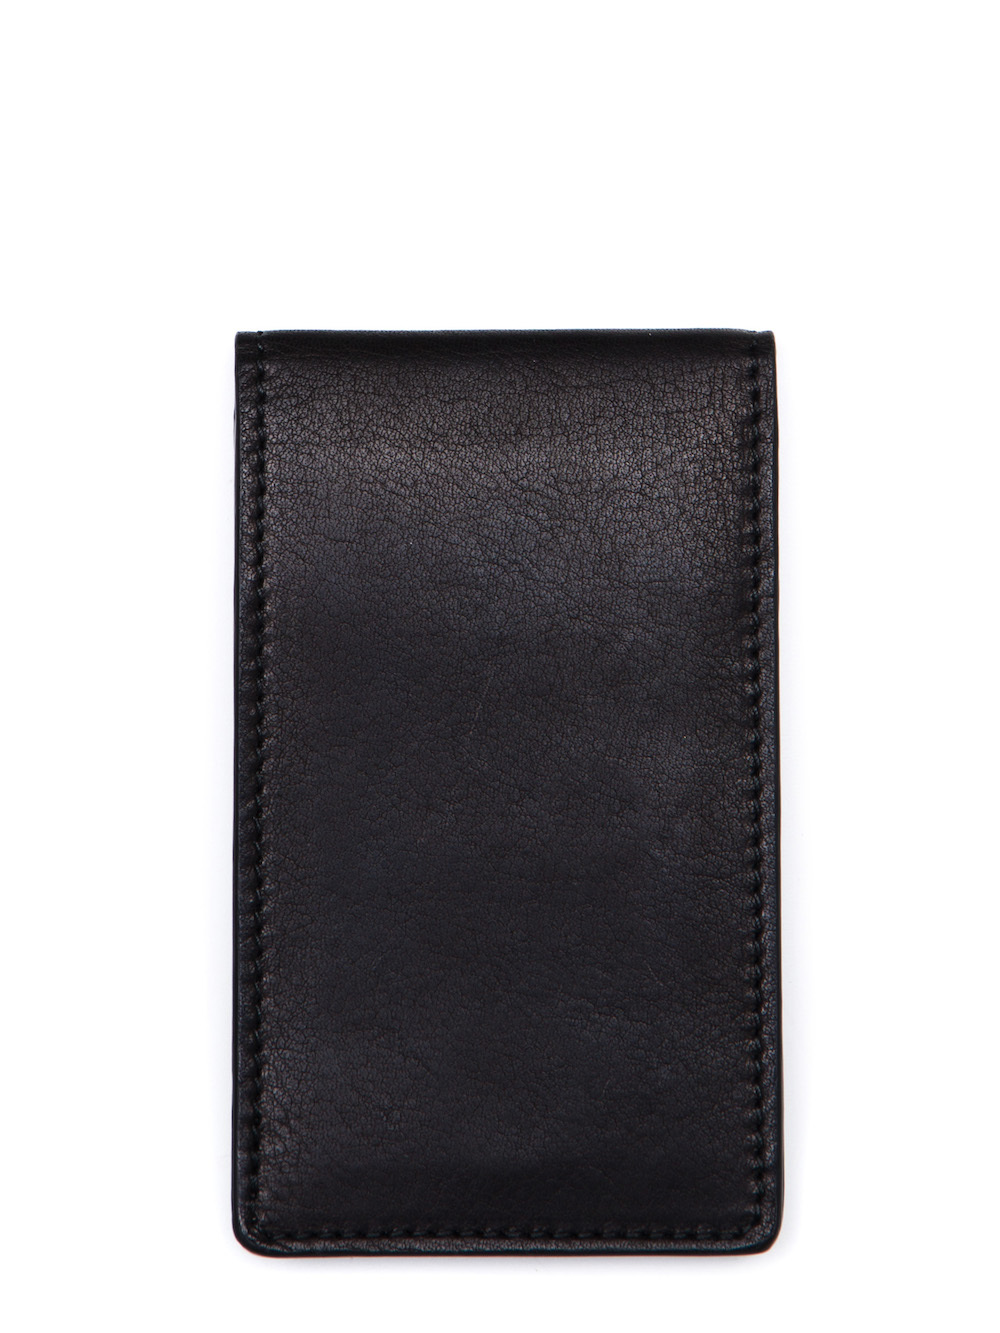 RICK OWENS BILLFOLD CREDIT CARD HOLDER IN BLACK